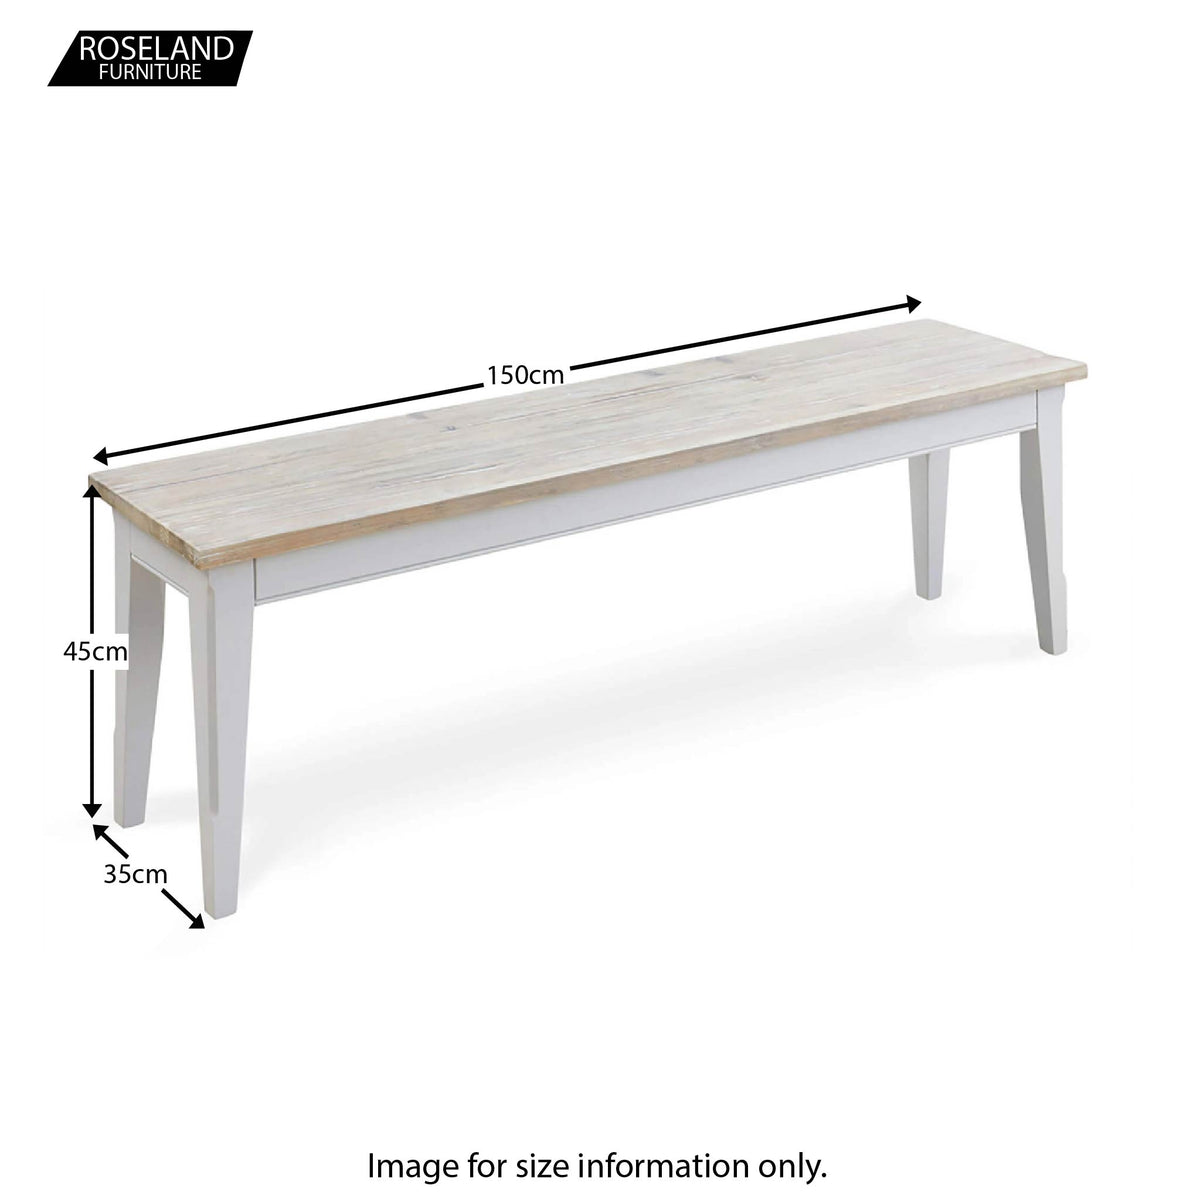 Signature 150cm Dining Bench - Size Guide